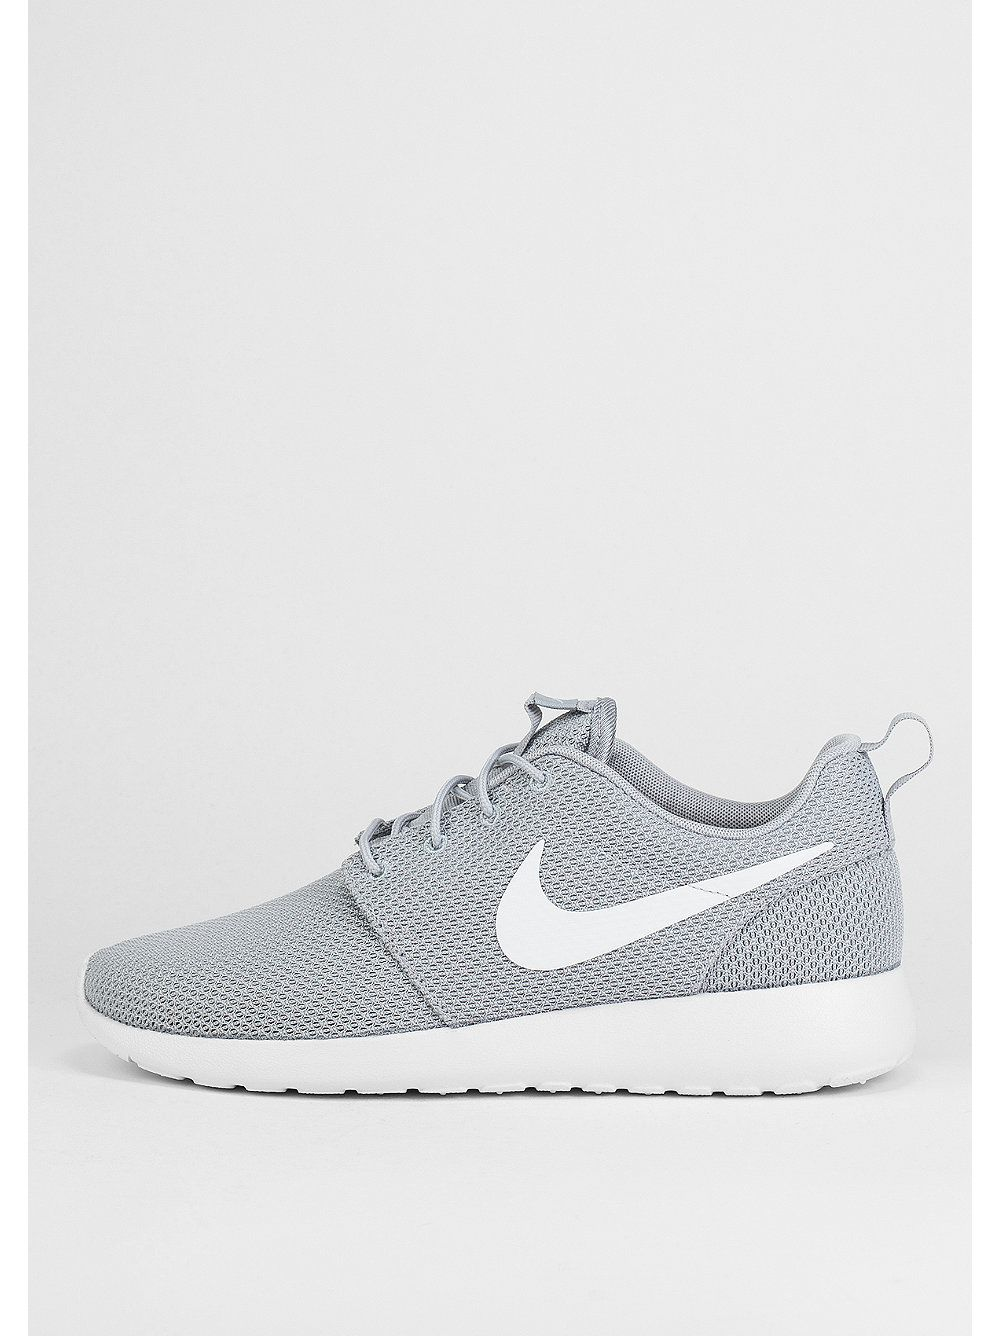 NIKE Laufschuh Roshe One wolf greywhite - associate-degree.de 5715989630